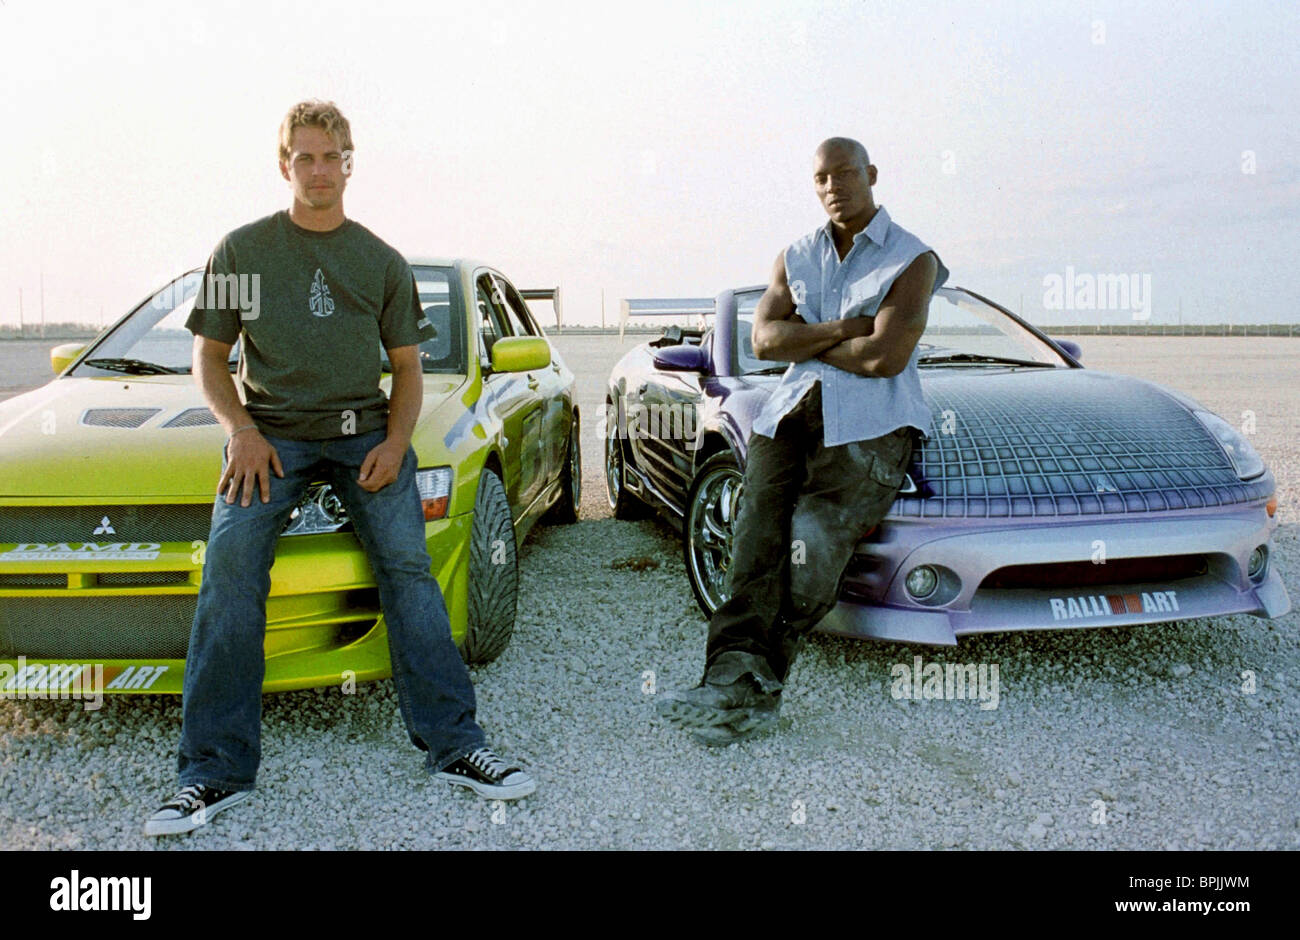 PAUL WALKER TYRESE GIBSON 2 FAST FURIOUS THE AND 2003